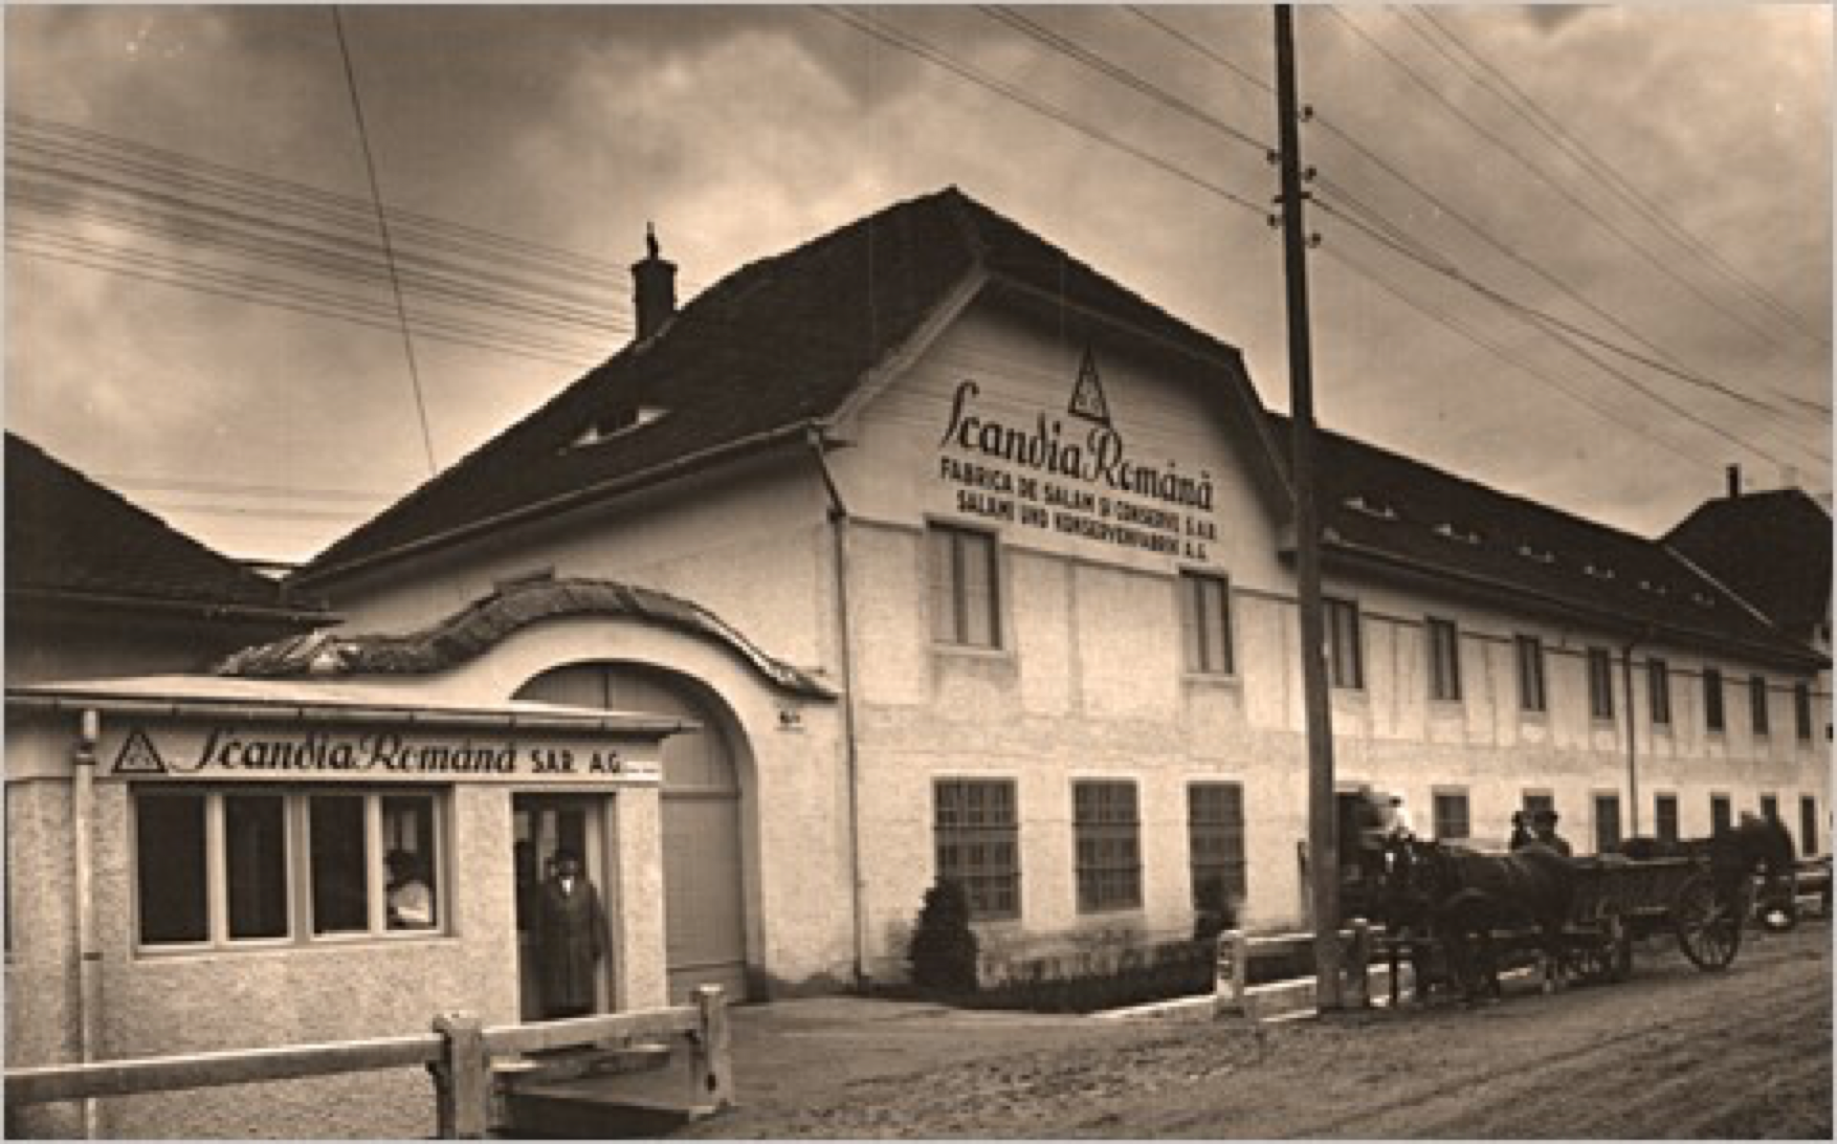 Scandia Food, a Short History